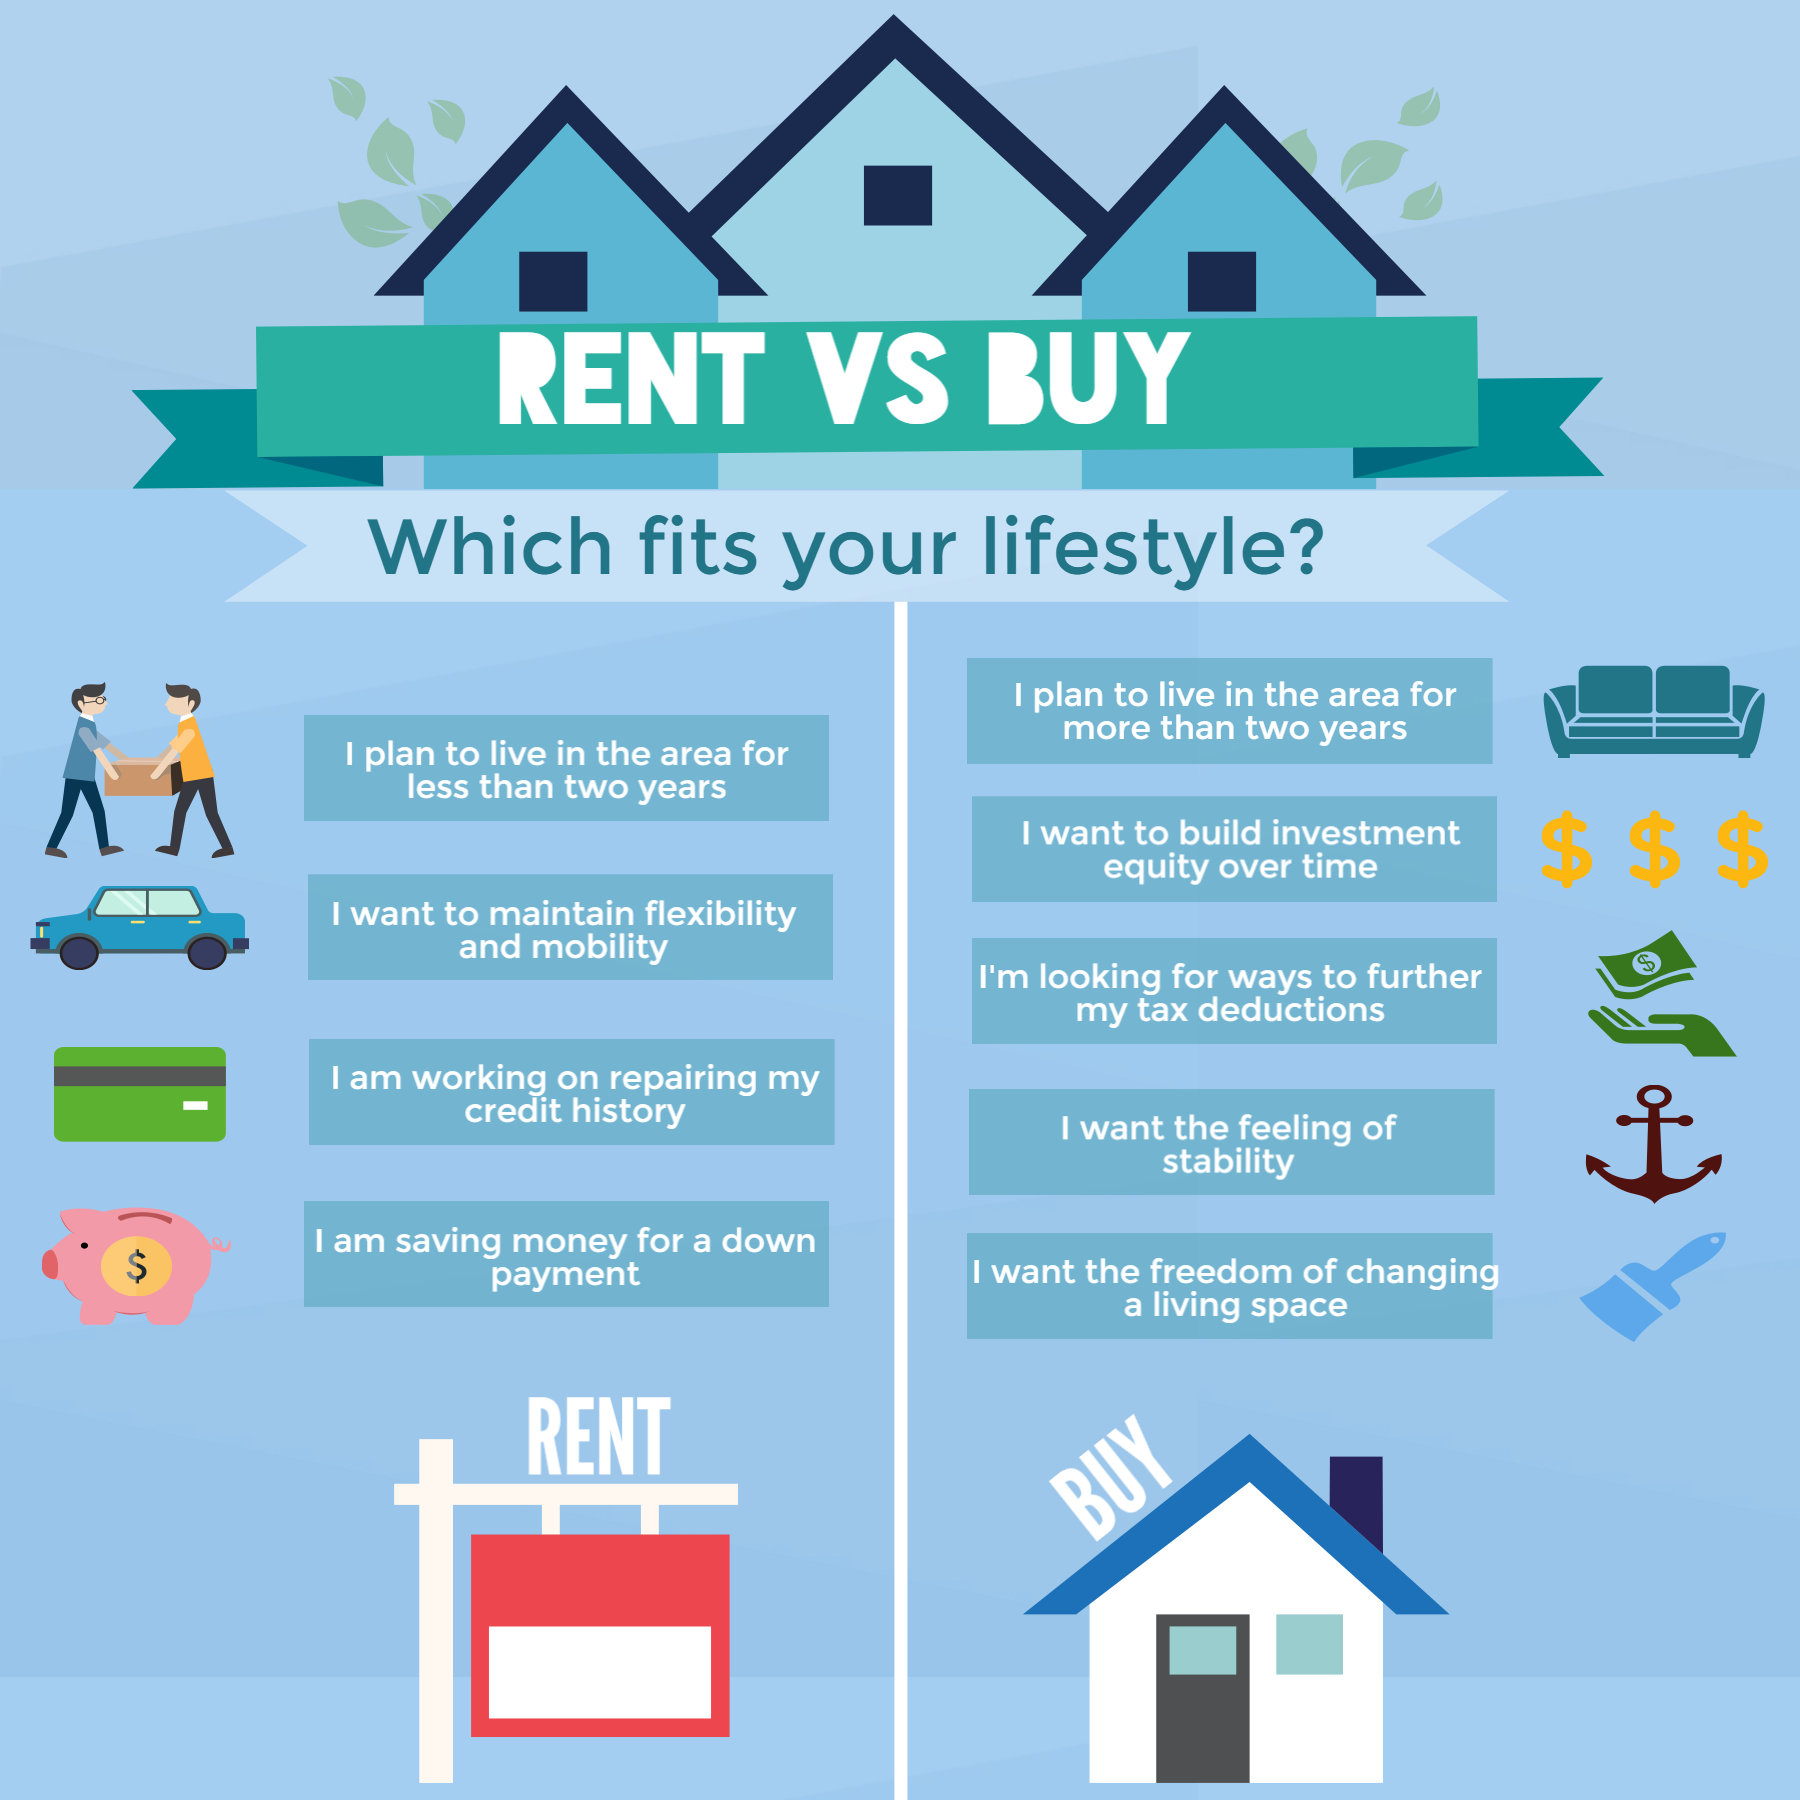 http://www.theyeatmangroup.com/wp-content/uploads/2016/09/rent-vs-buy.png